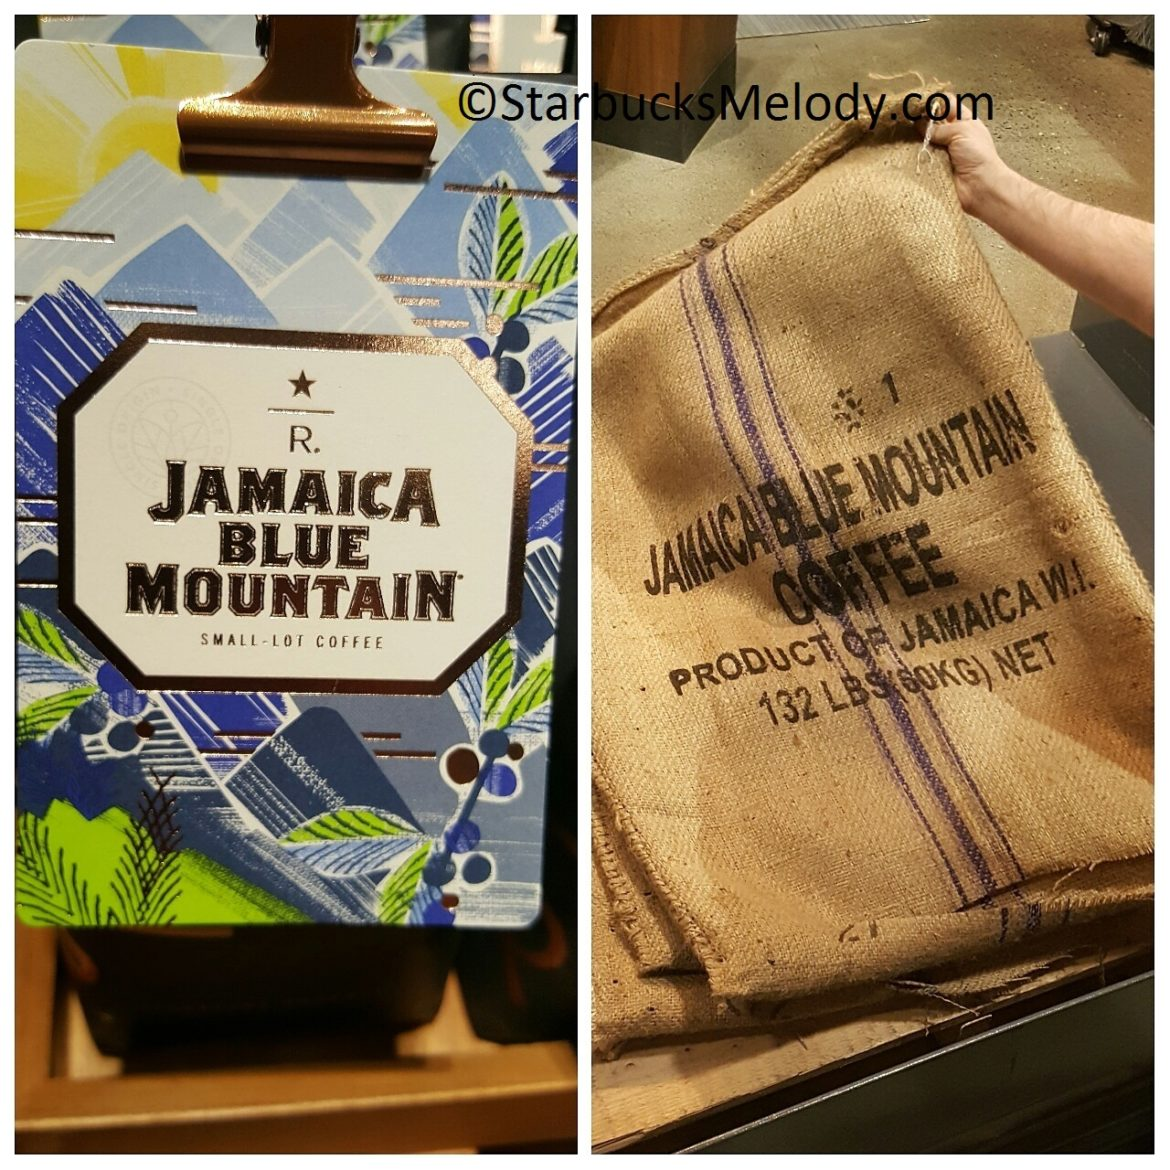 Delicious Jamaica Blue Mountain Coffee Returns to Starbucks. ($34.50 for 8 ounces)